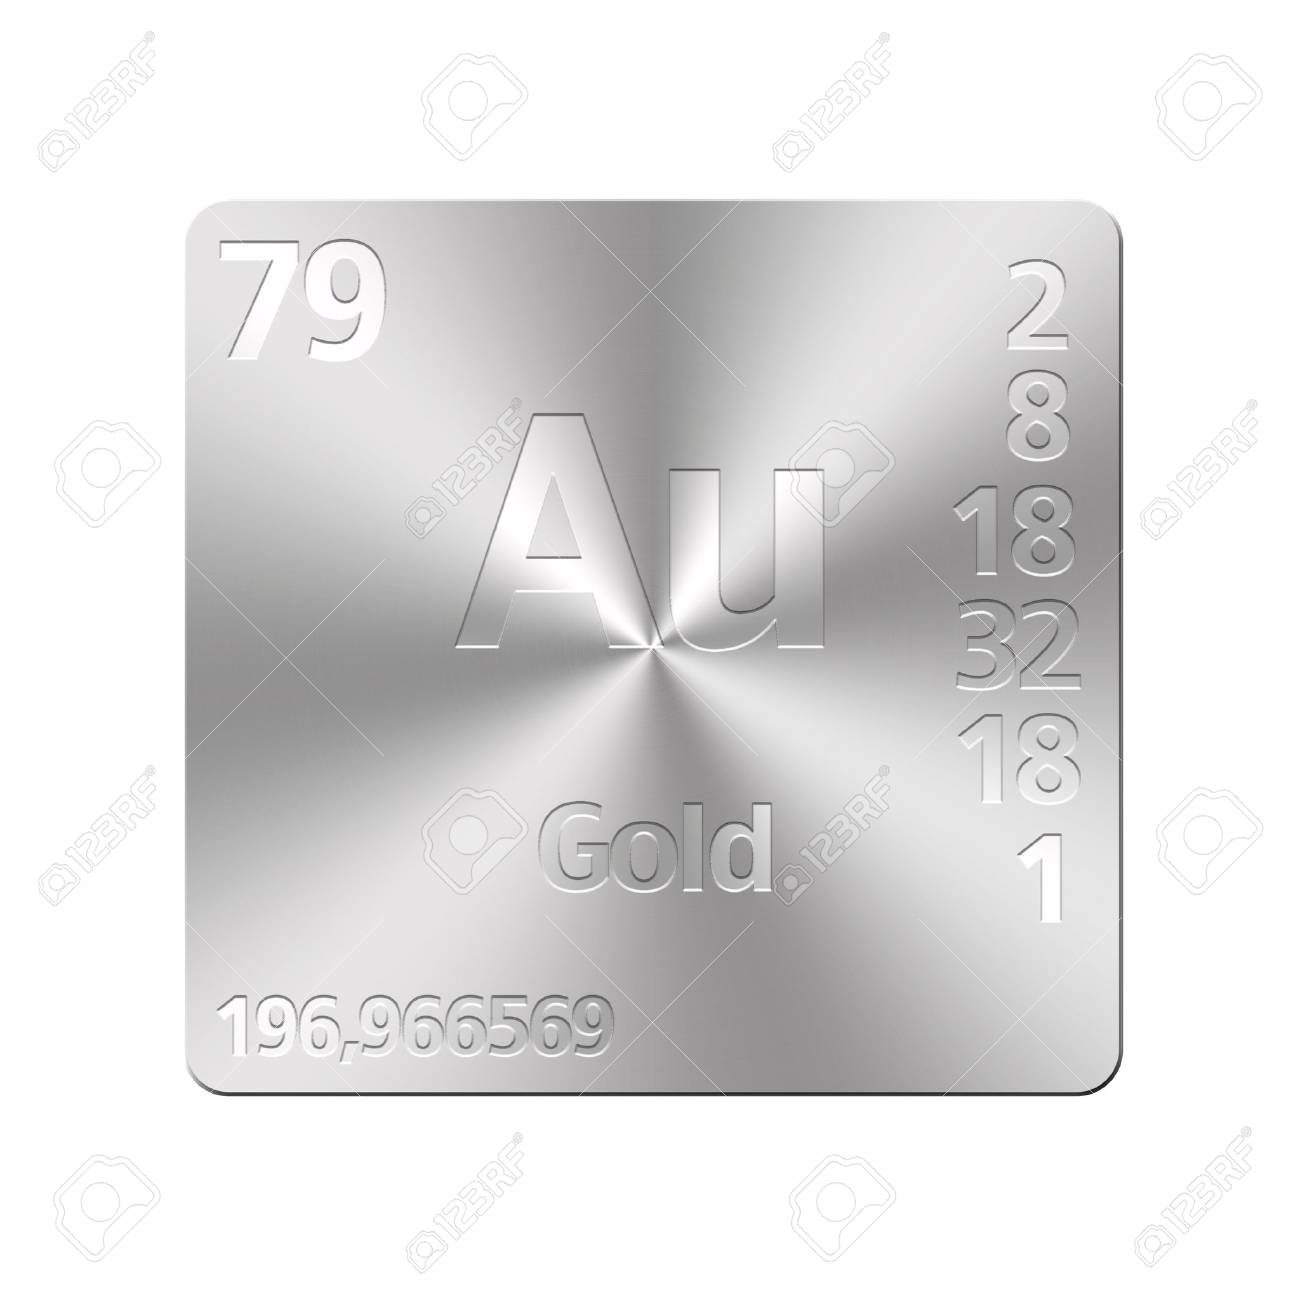 Isolated metal button with periodic table, Gold Stock Photo - 15972762